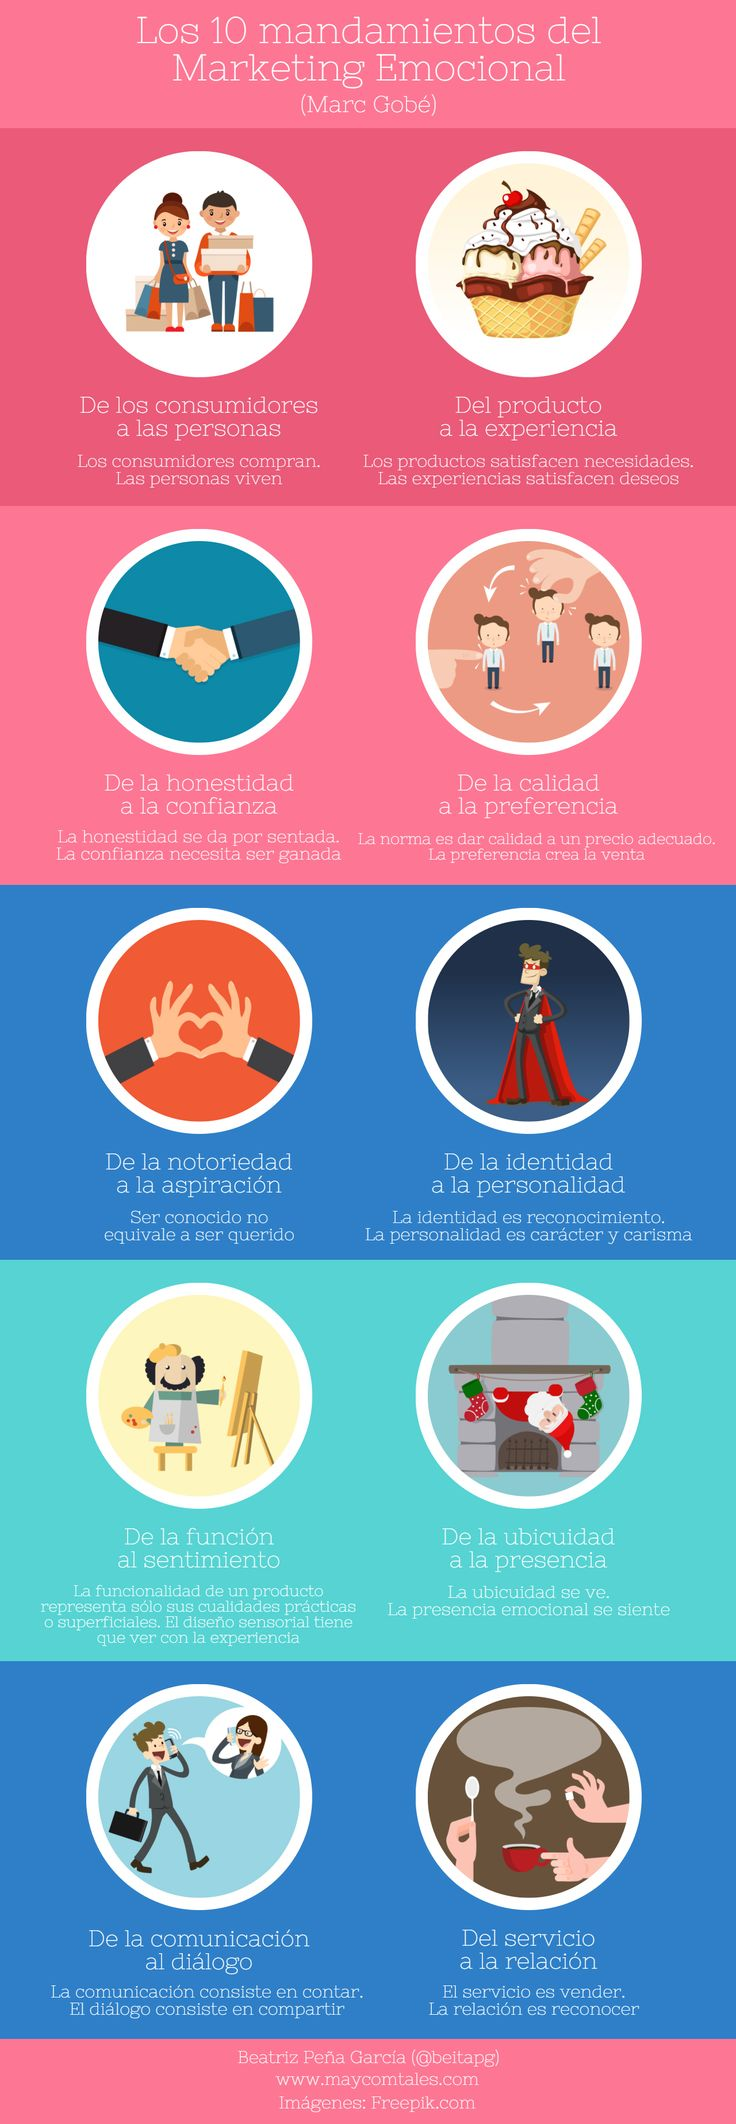 Los 10 mandamientos del Marketing Emocional. Infografía en español. #CommunityManager